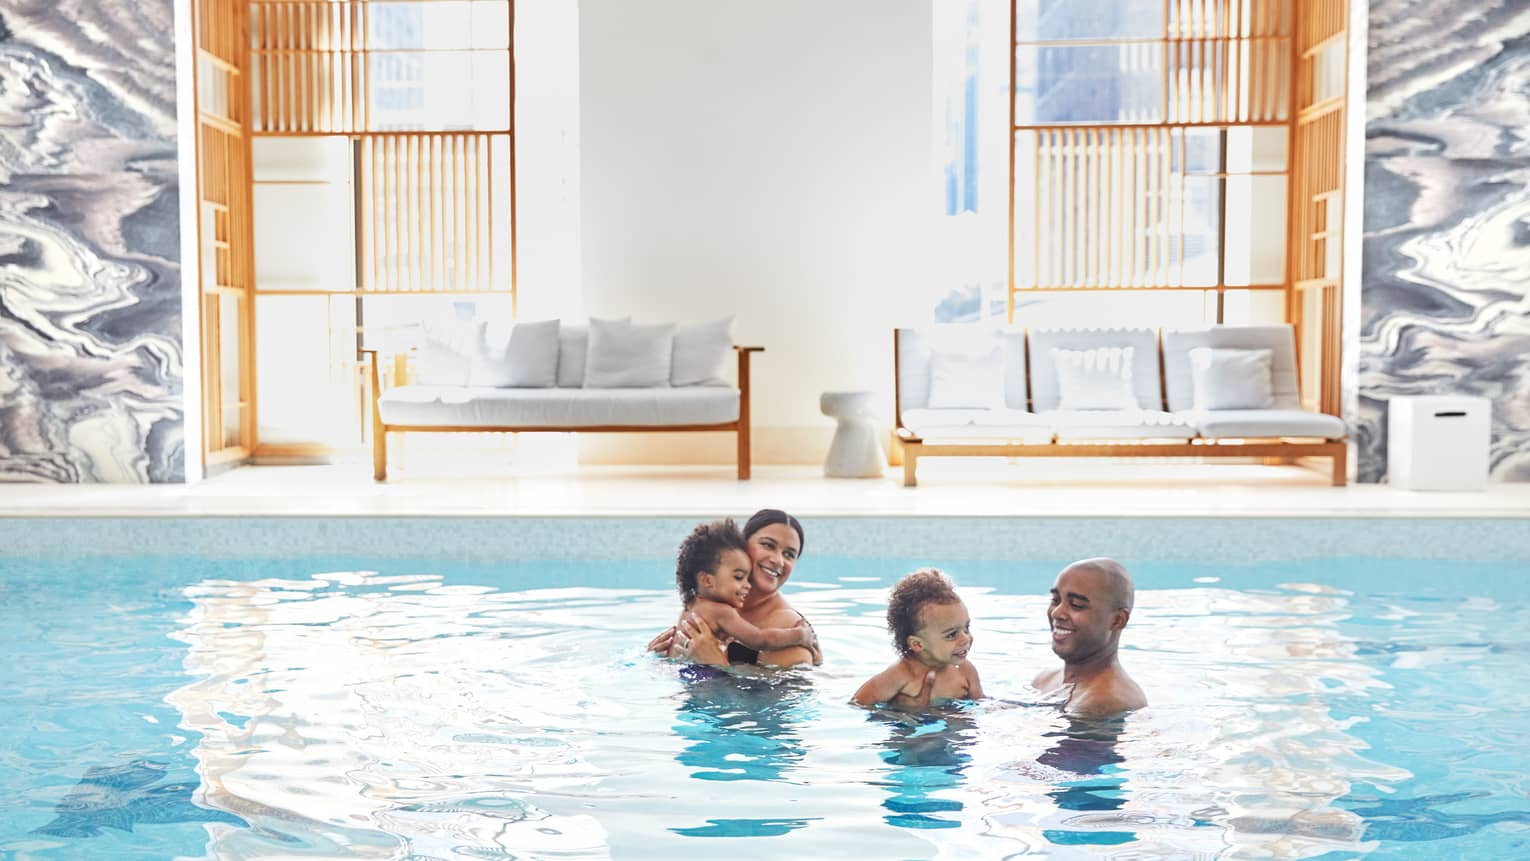 A family of four has fun in the indoor pool